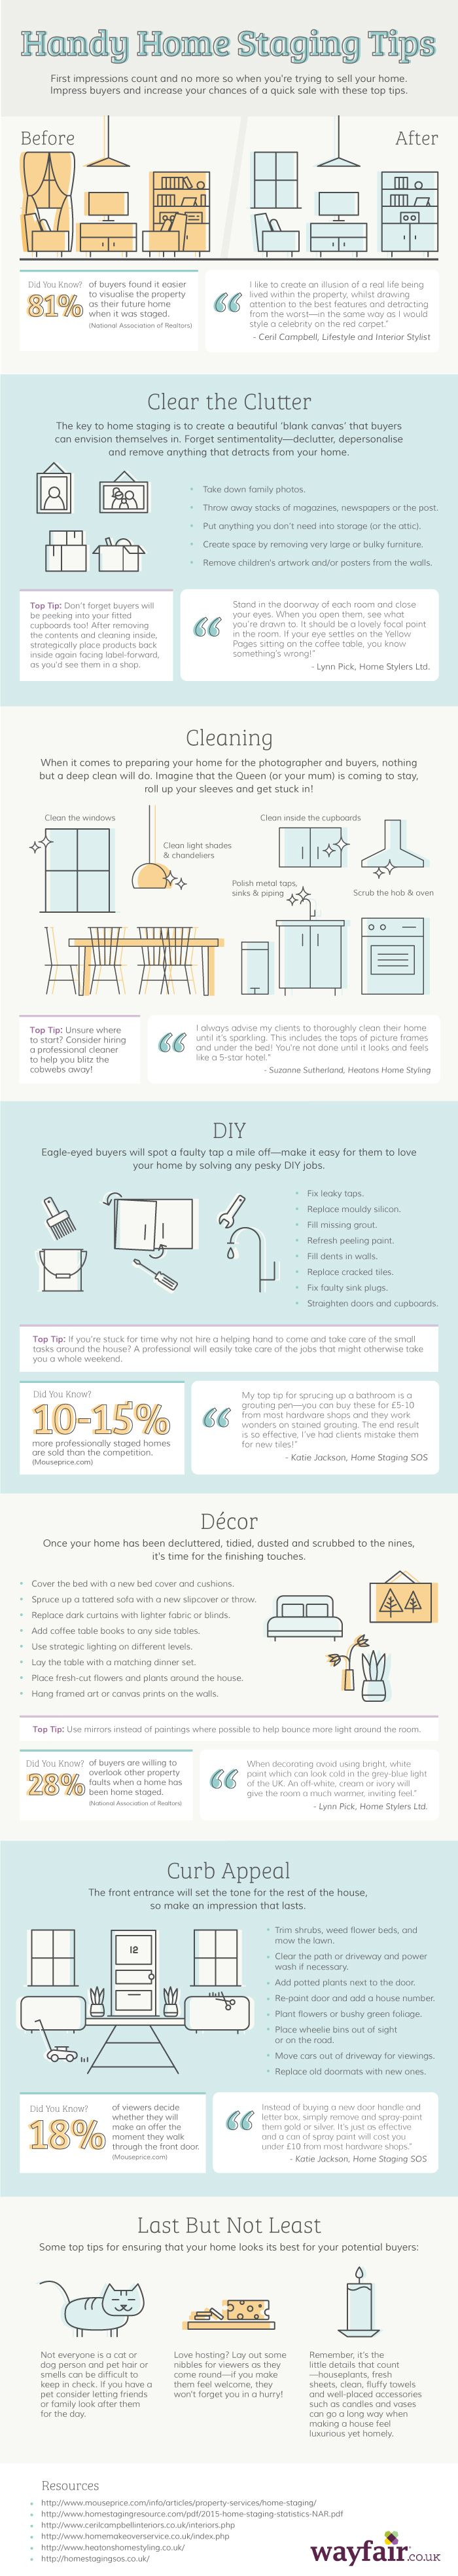 Handy Home Staging Tips #infographic